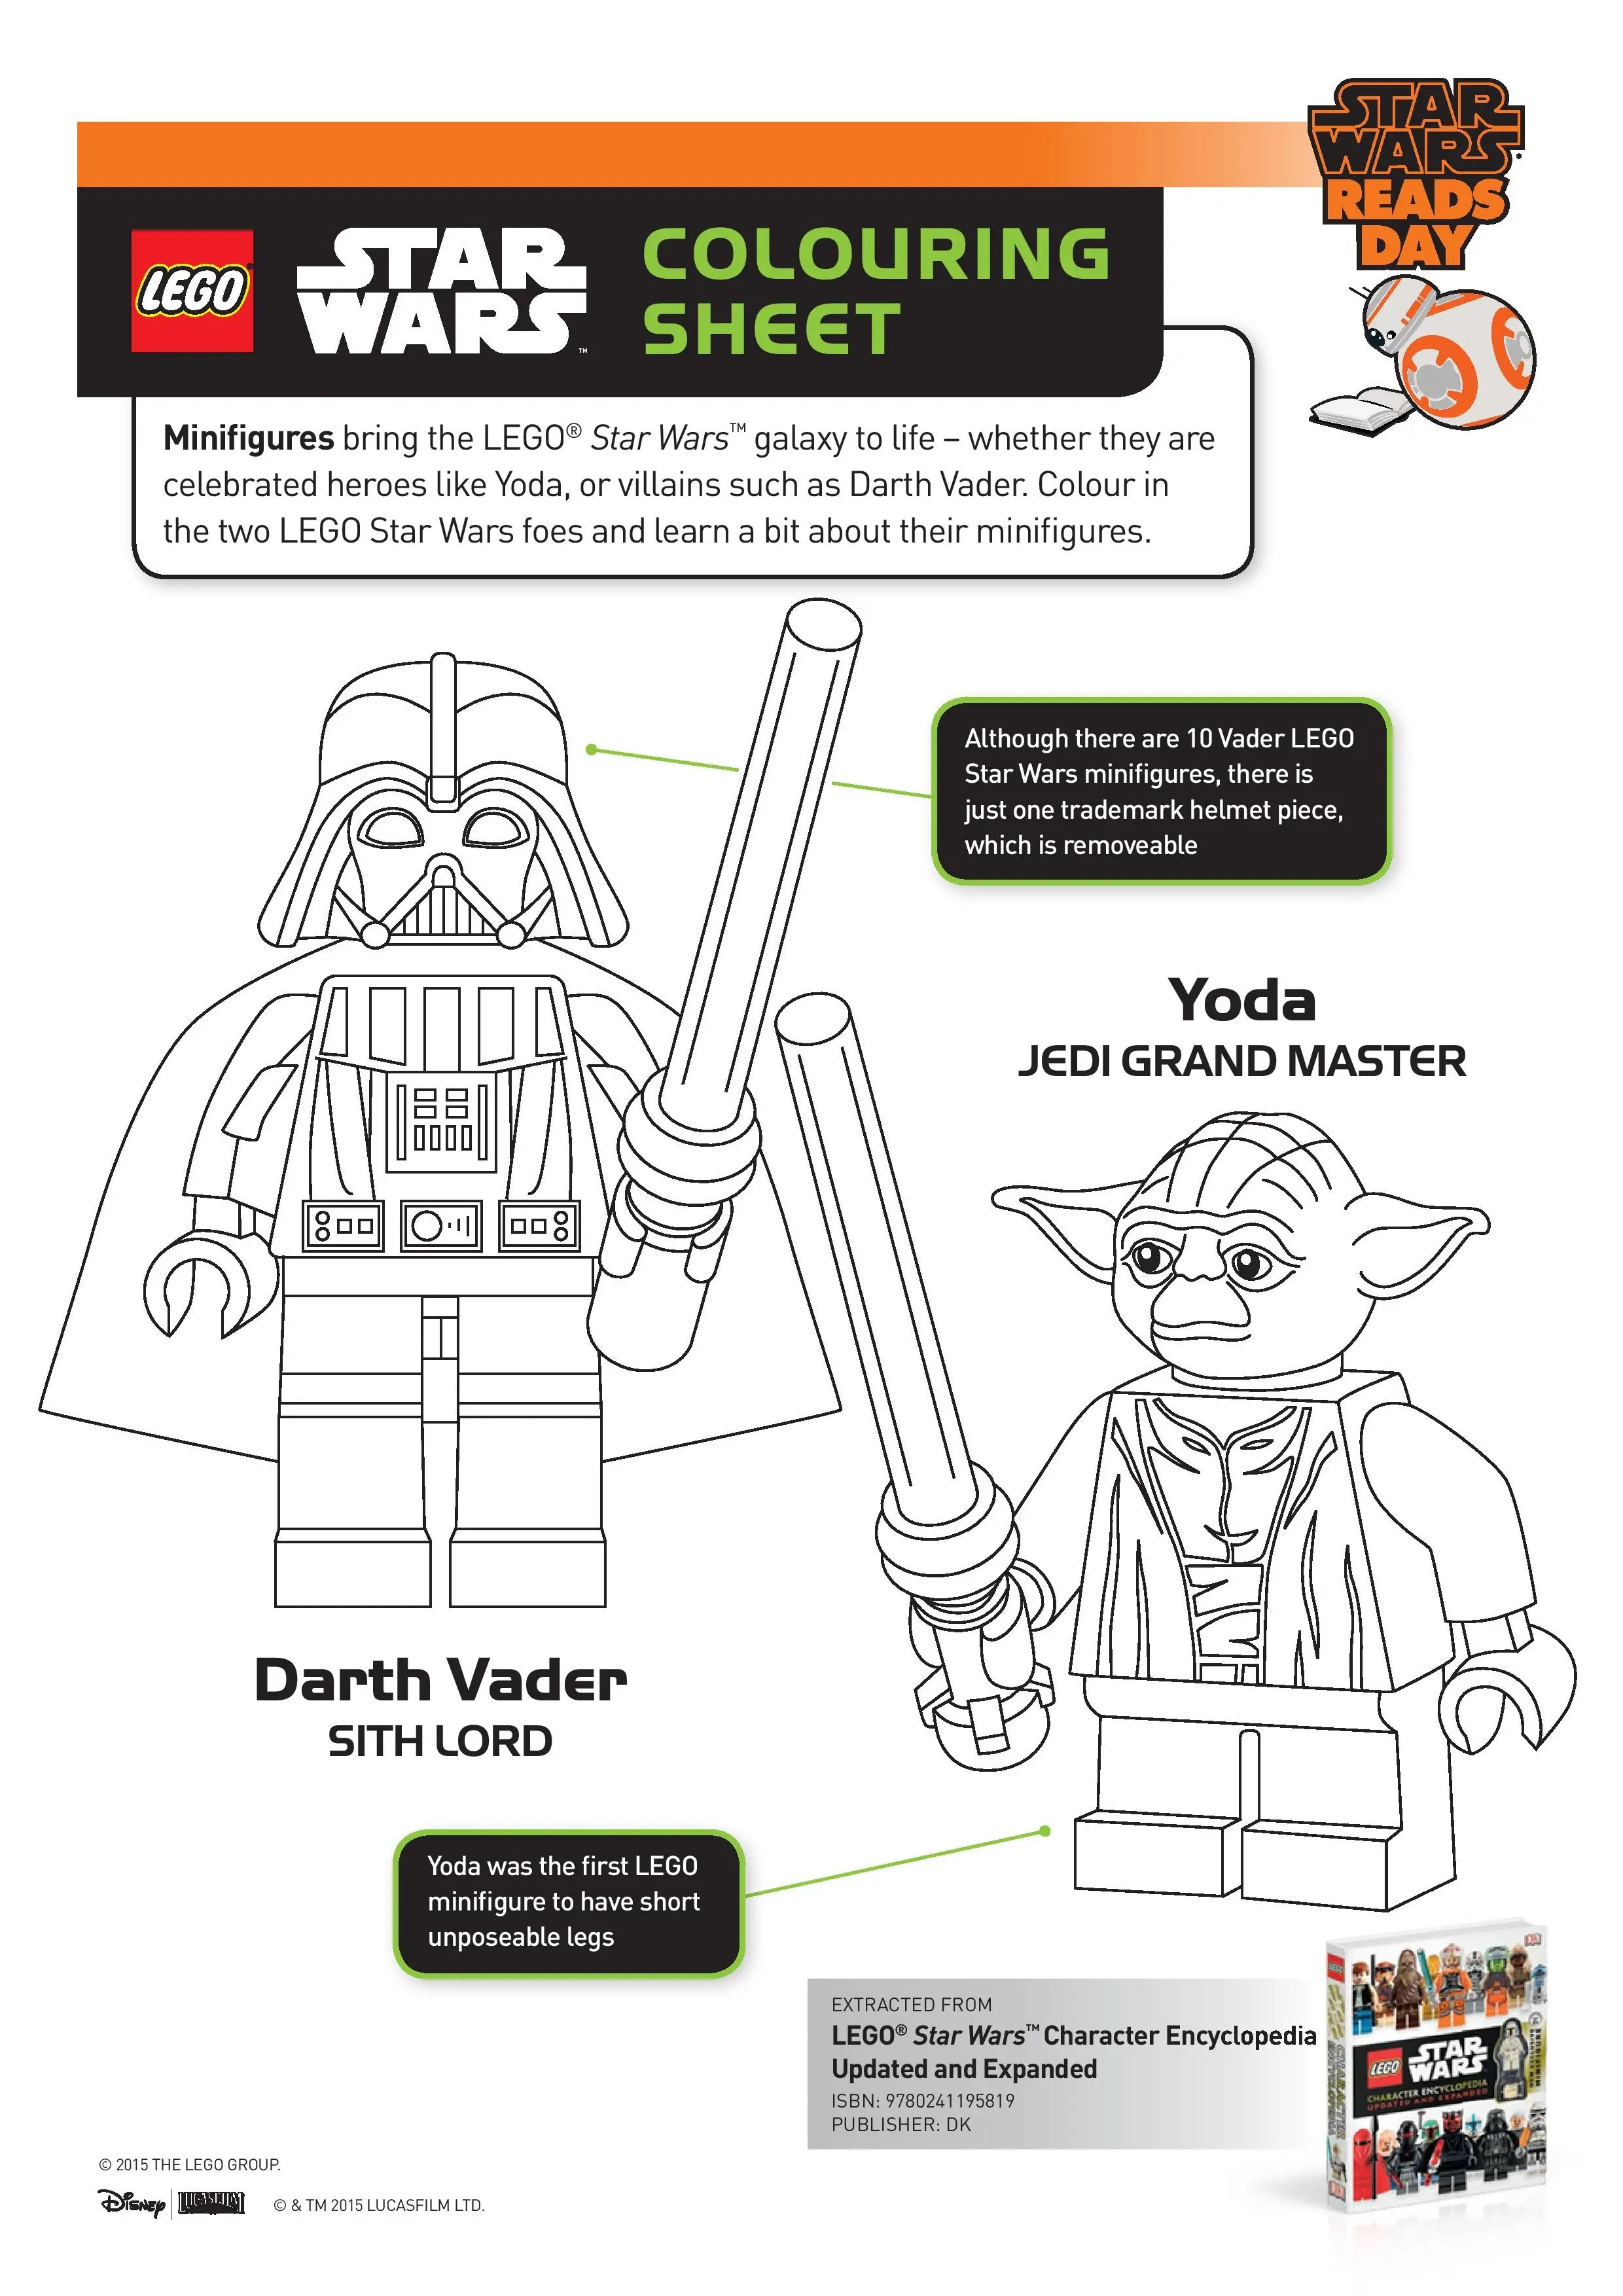 Lego Star Wars Colouring Sheet with Darth Vader and Yoda